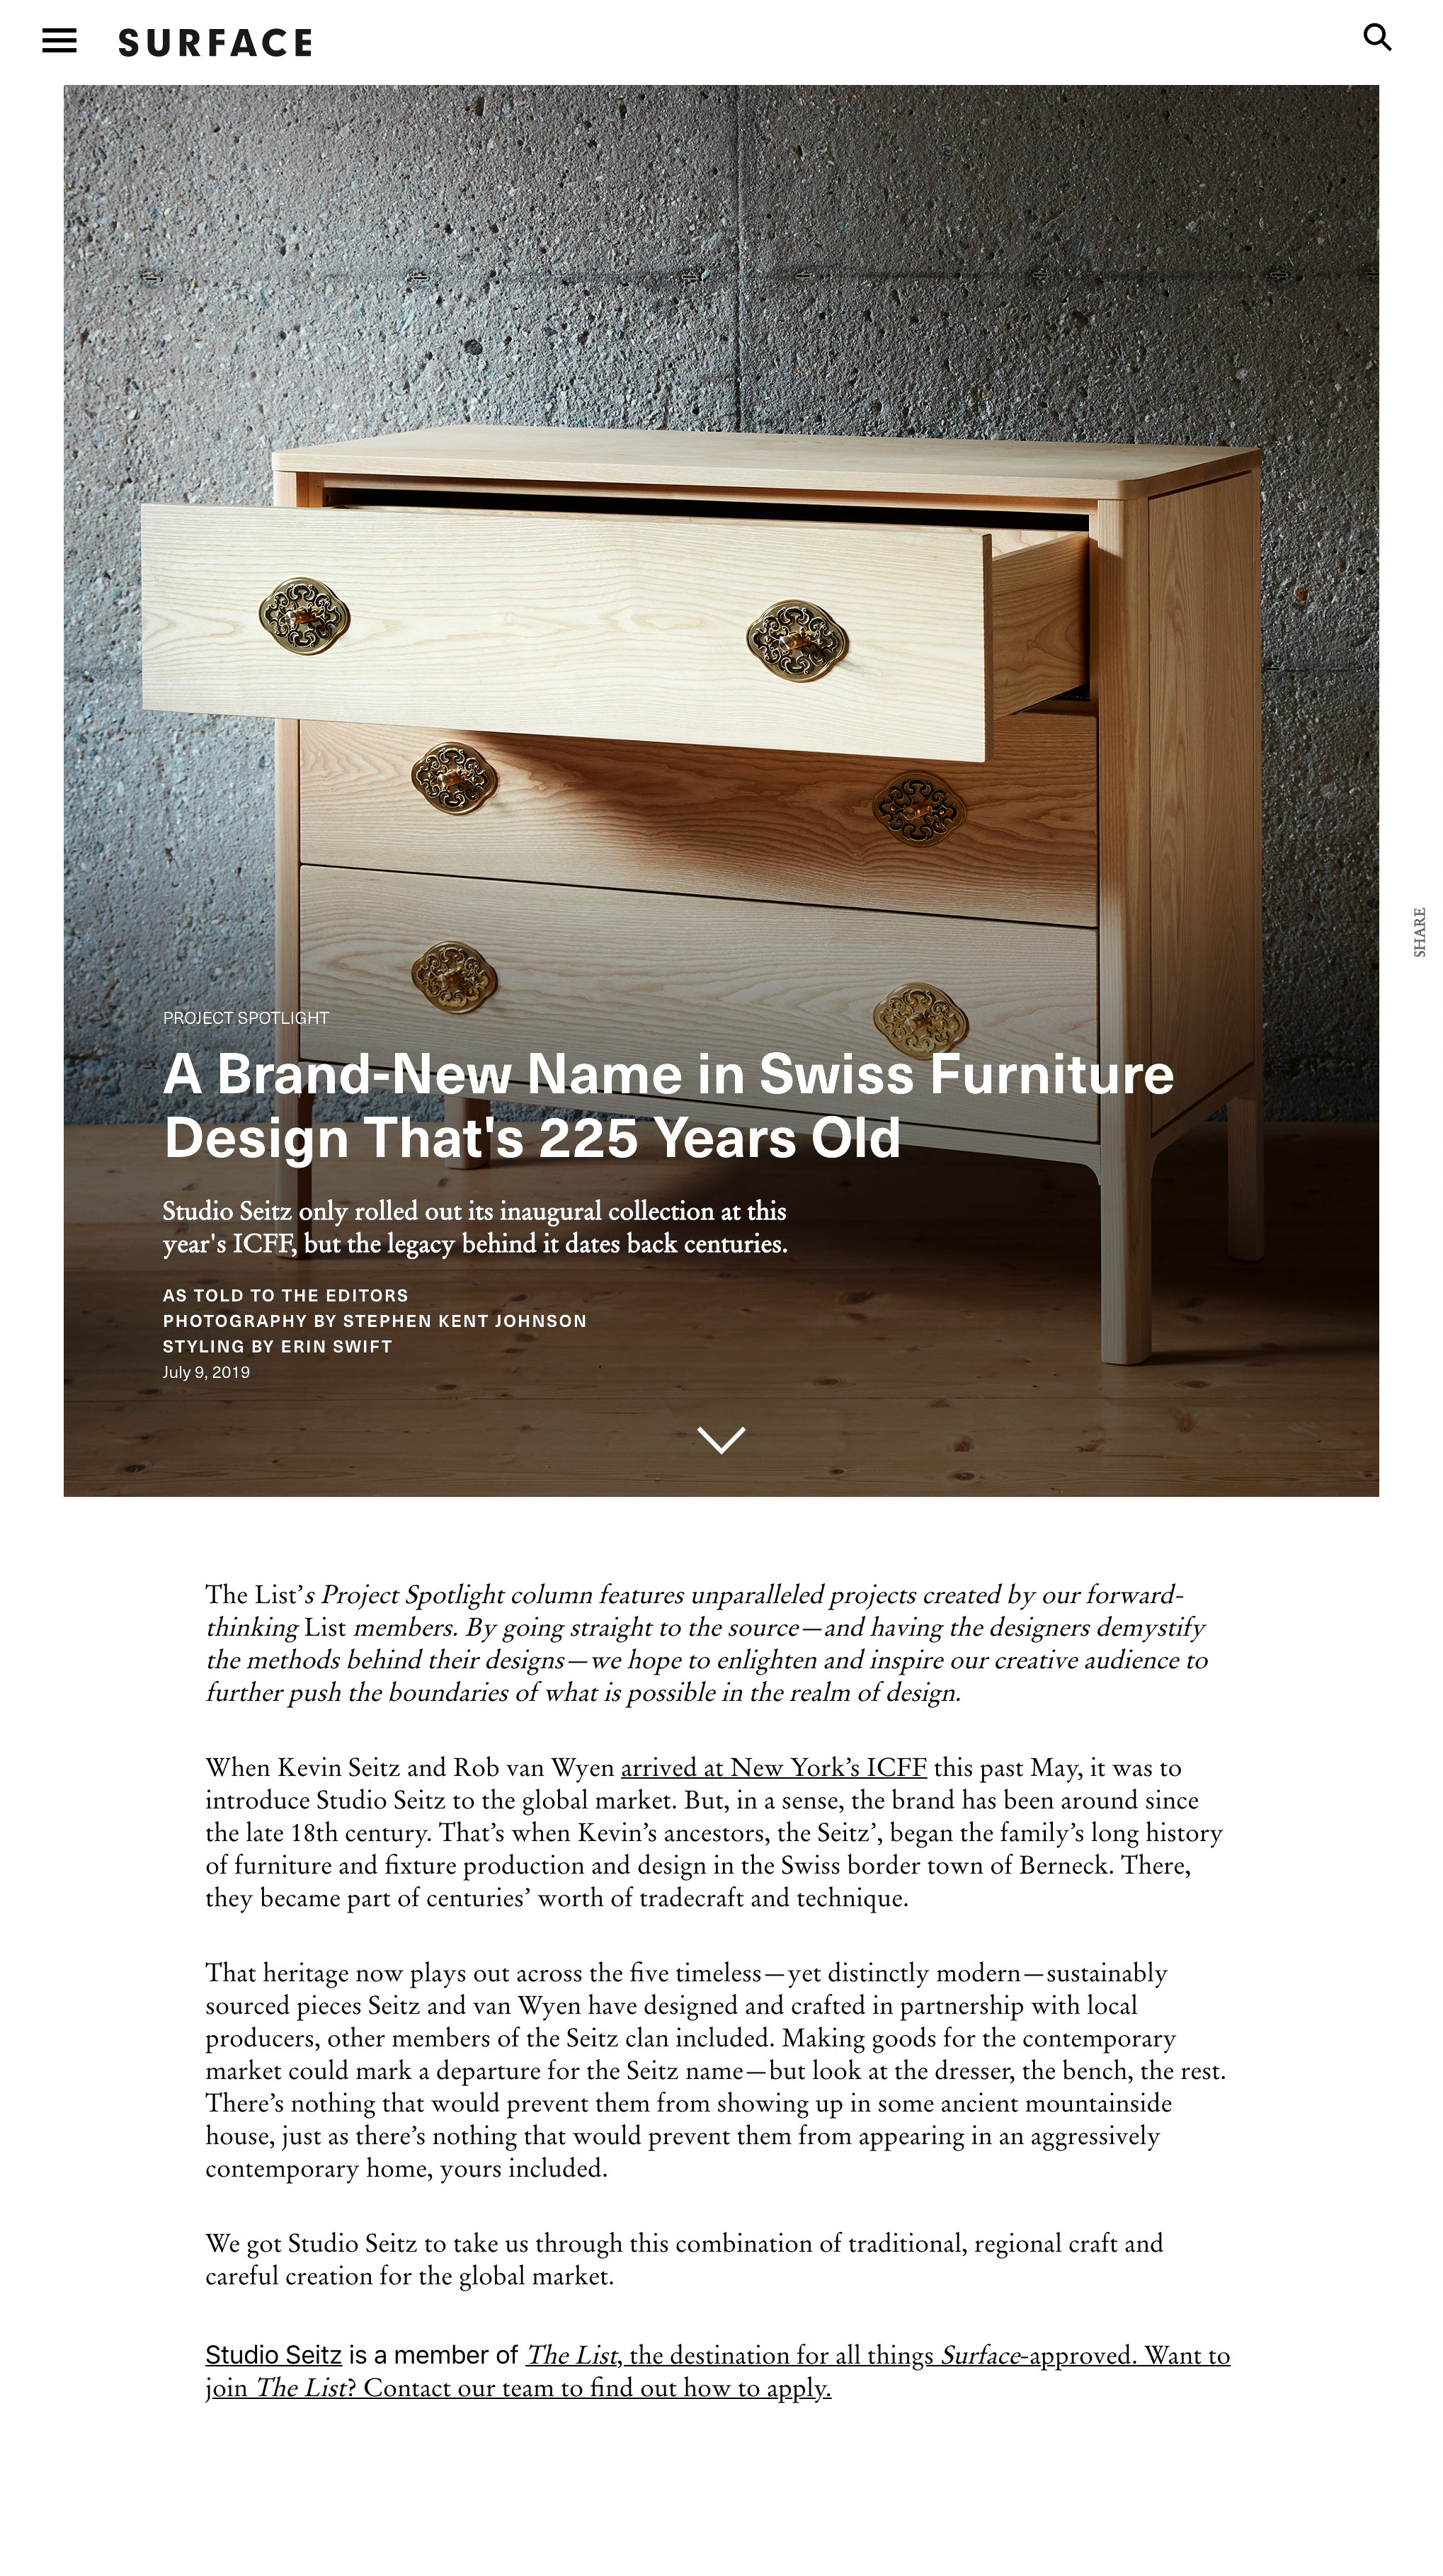 Surface Magazine: A Brand-New Name in Swiss Furniture Design That's 225 Years Old